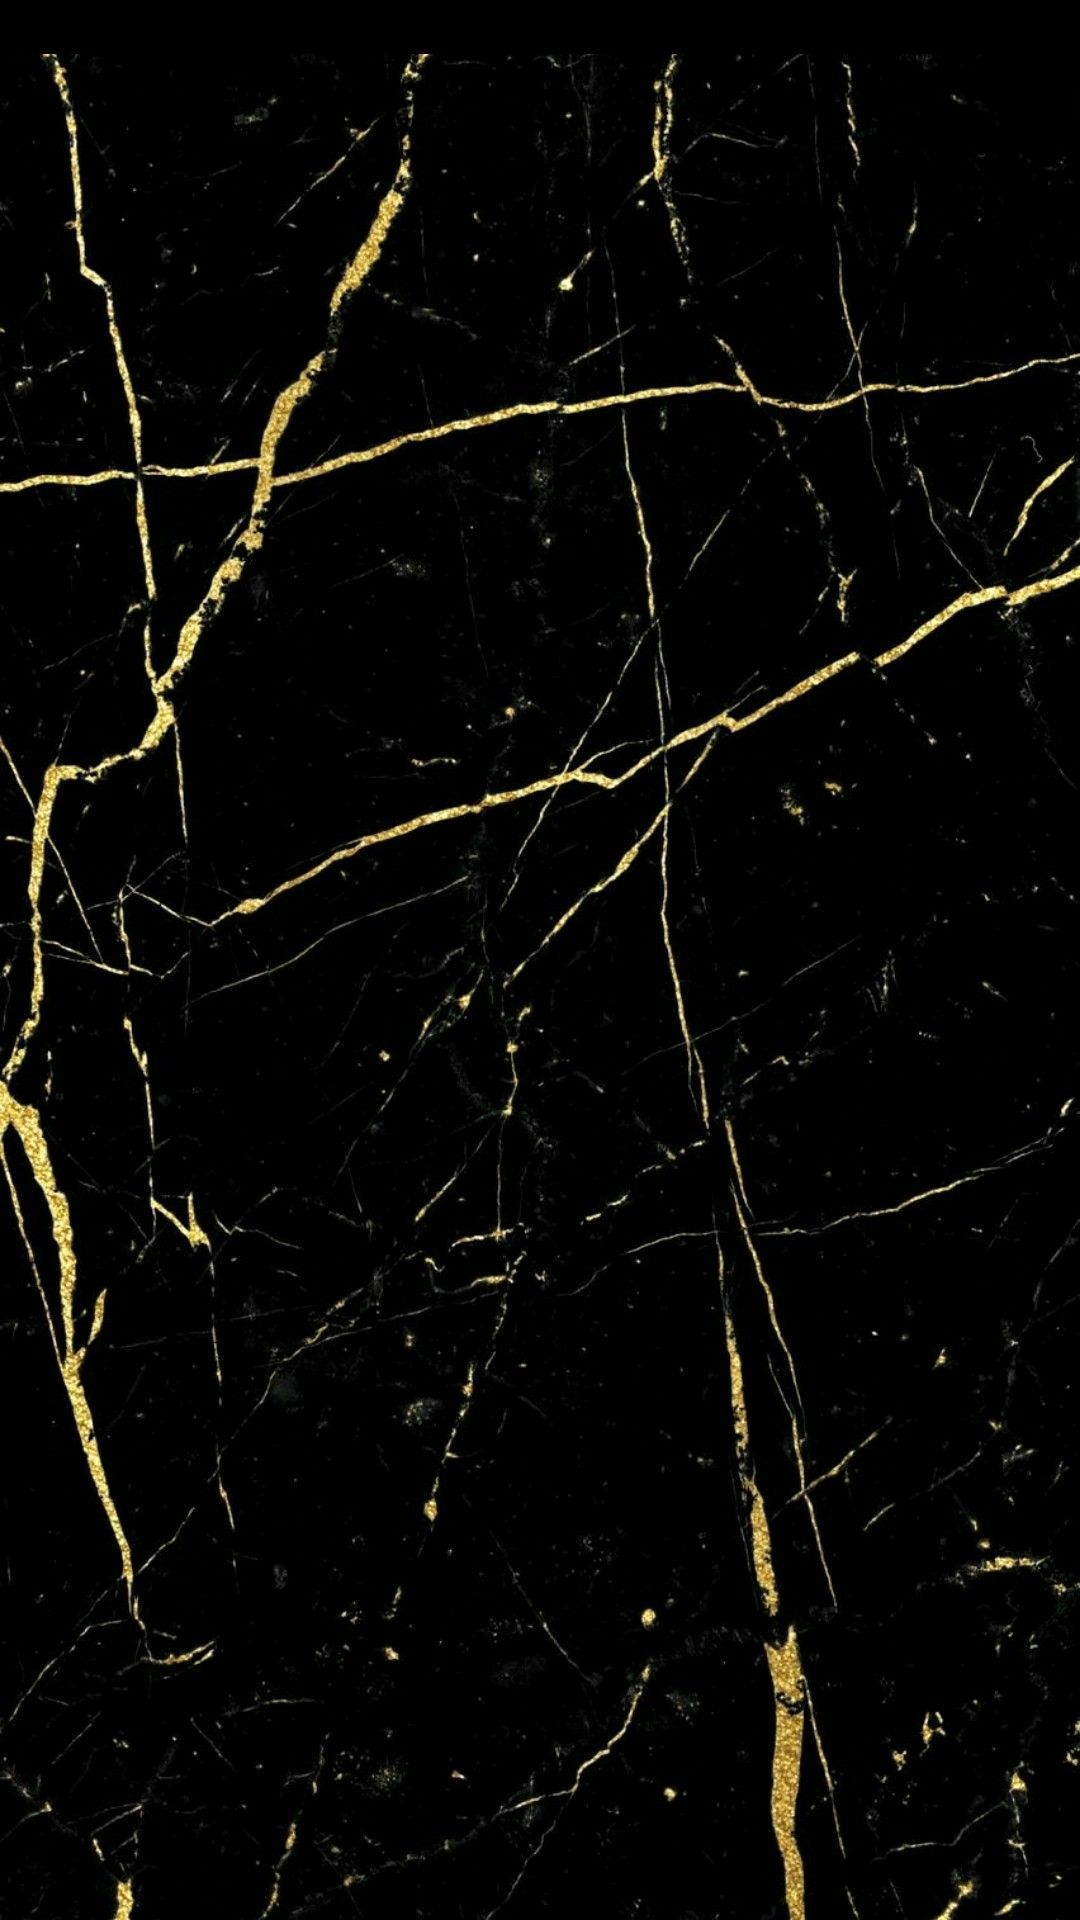 Marble Black White Gold Background Image In 2020 Marble Wallpaper Hd Marble Iphone Wallpaper Black And Gold Marble